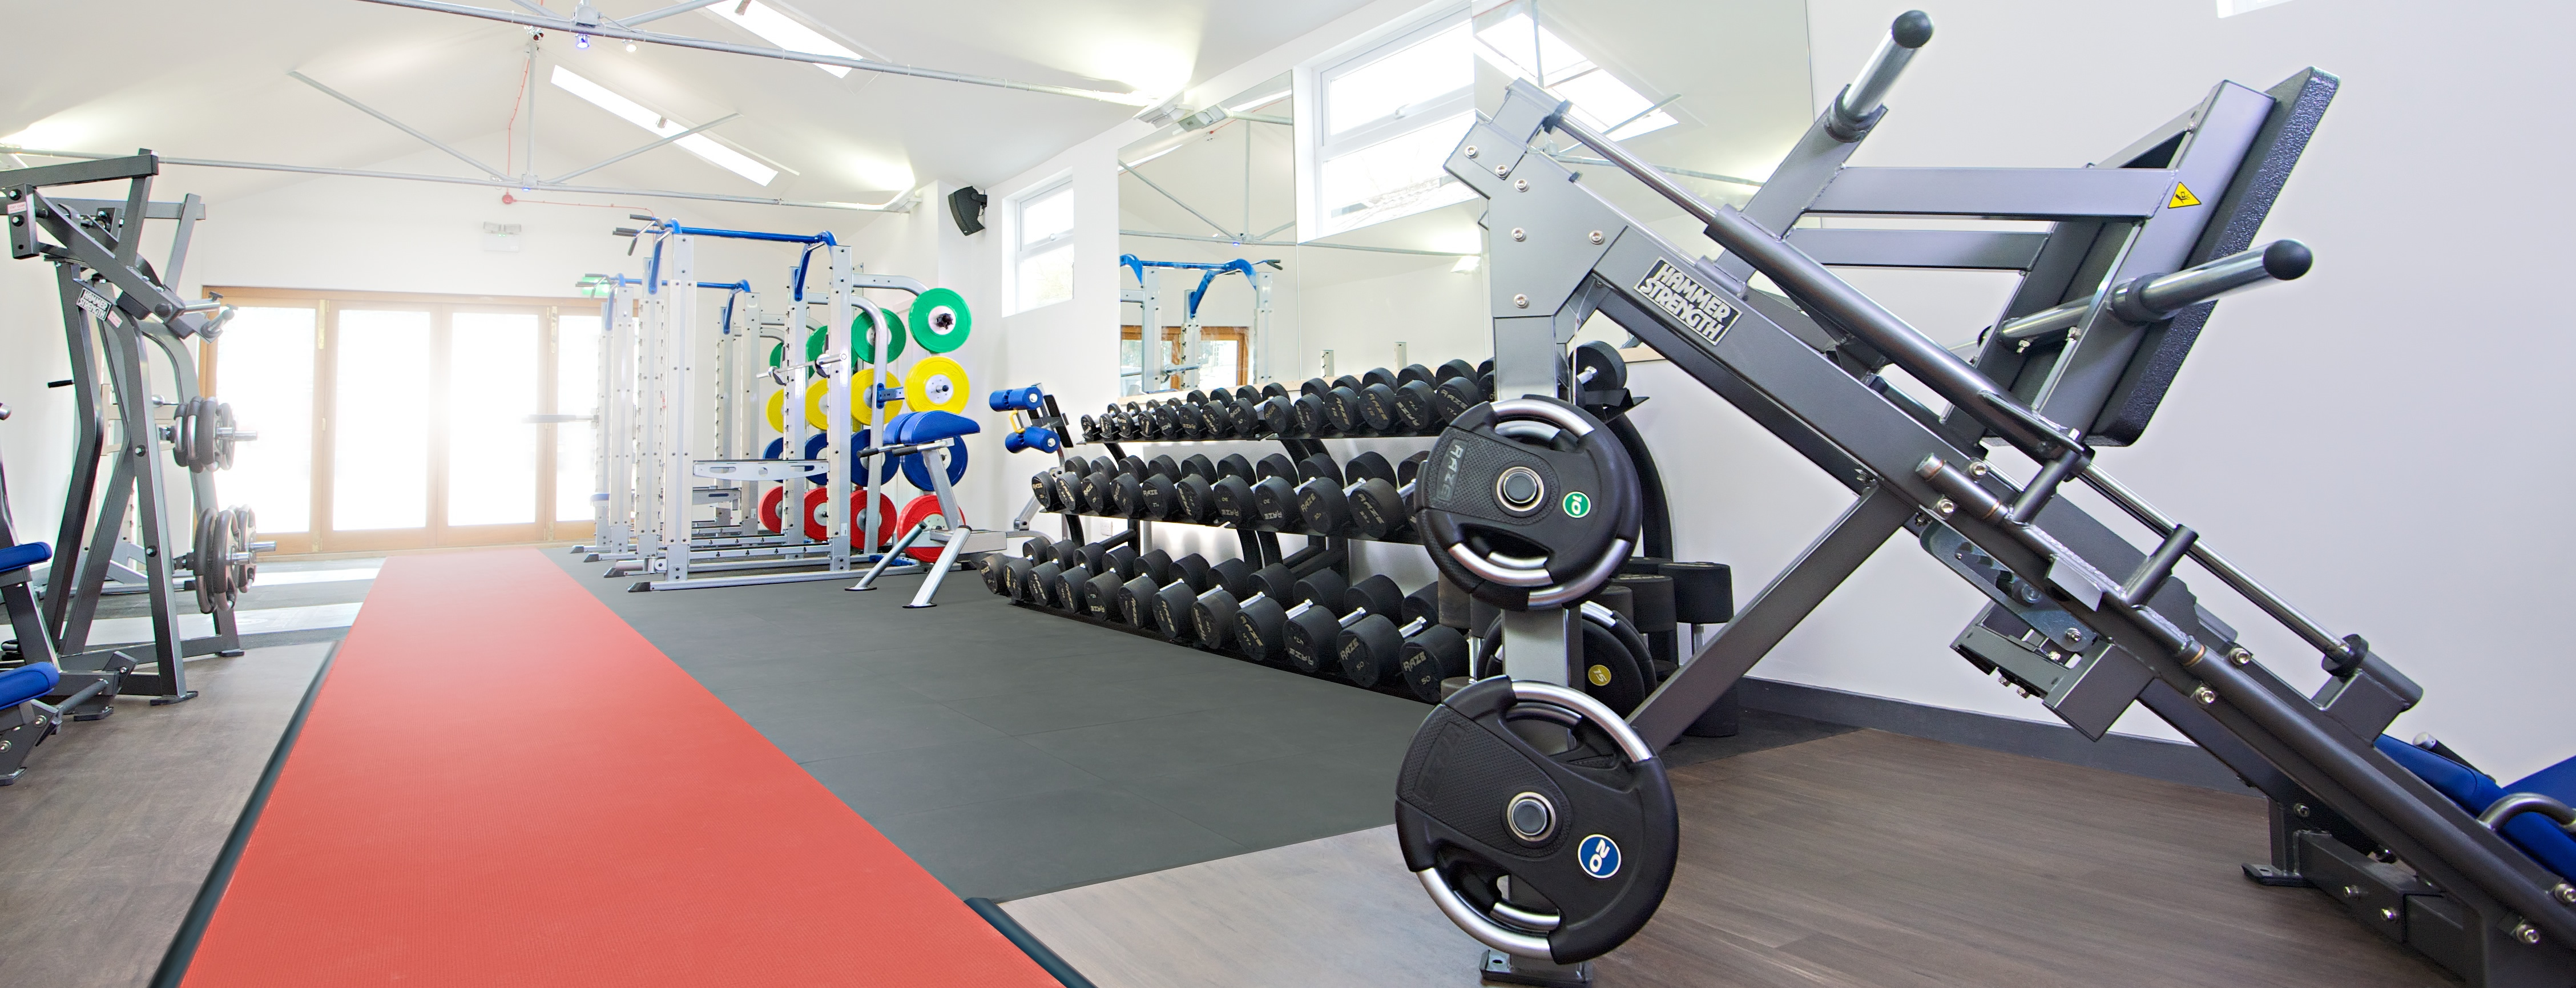 Silvermere Strength and Fitness Cobham